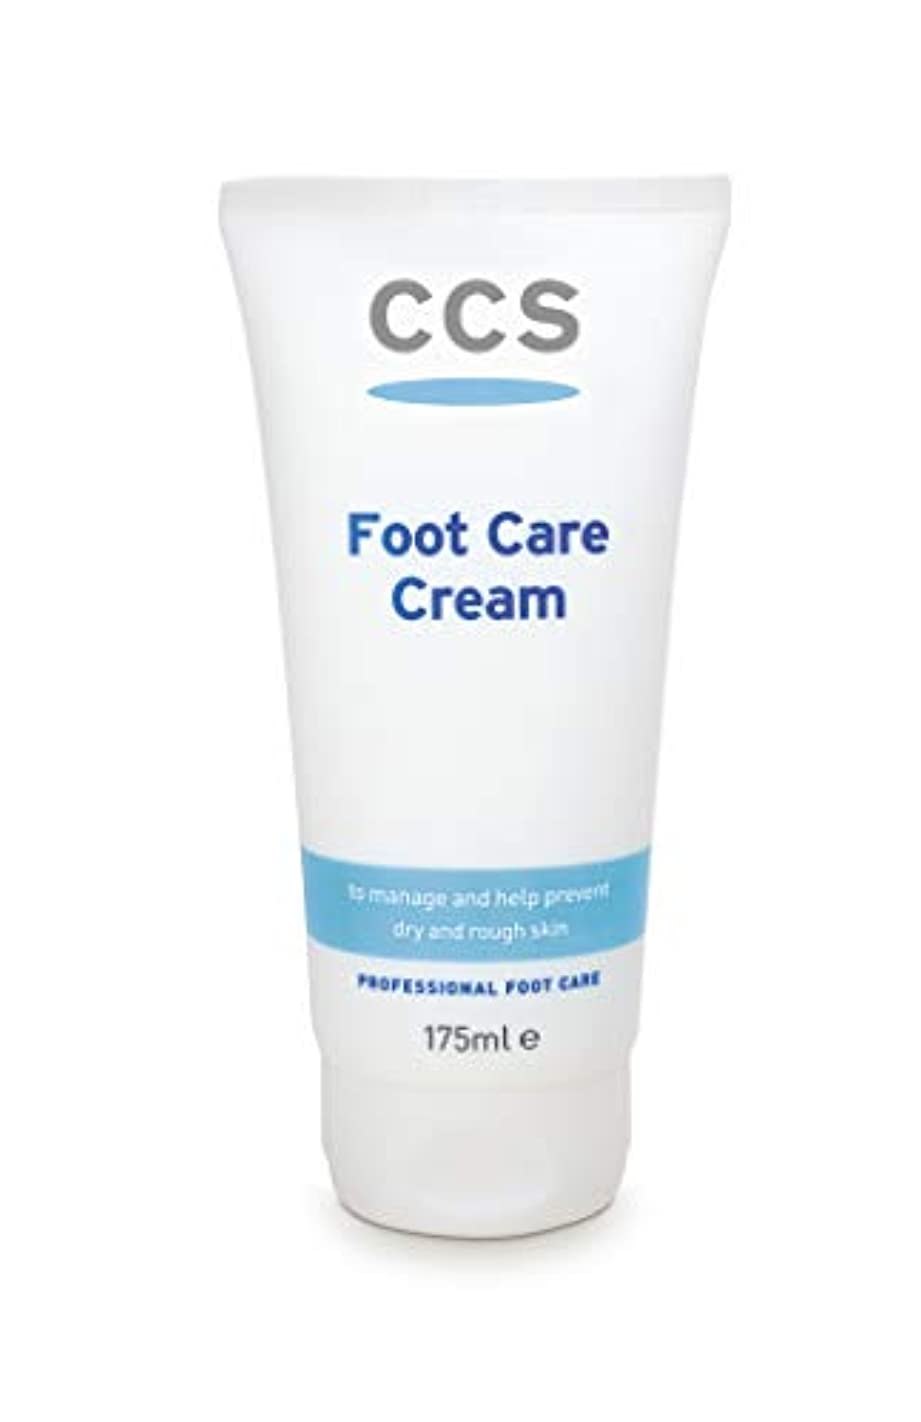 夜間湿った姿勢CCS Foot Care Cream 175ml by CCS